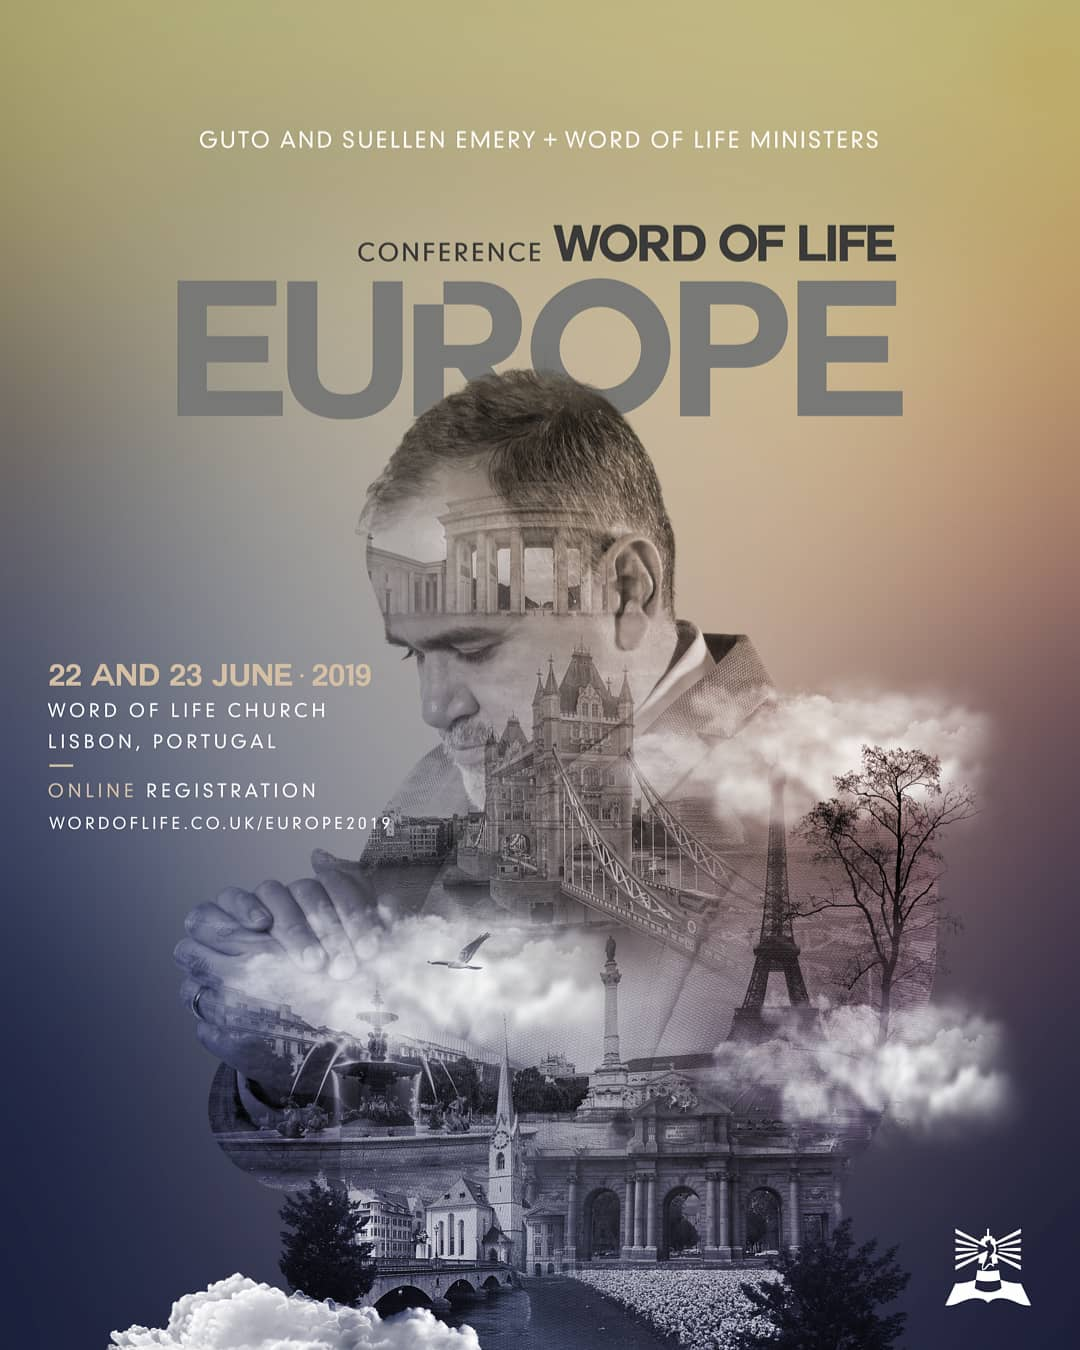 Word of Life Conference Europe 2019 in Lisbon.